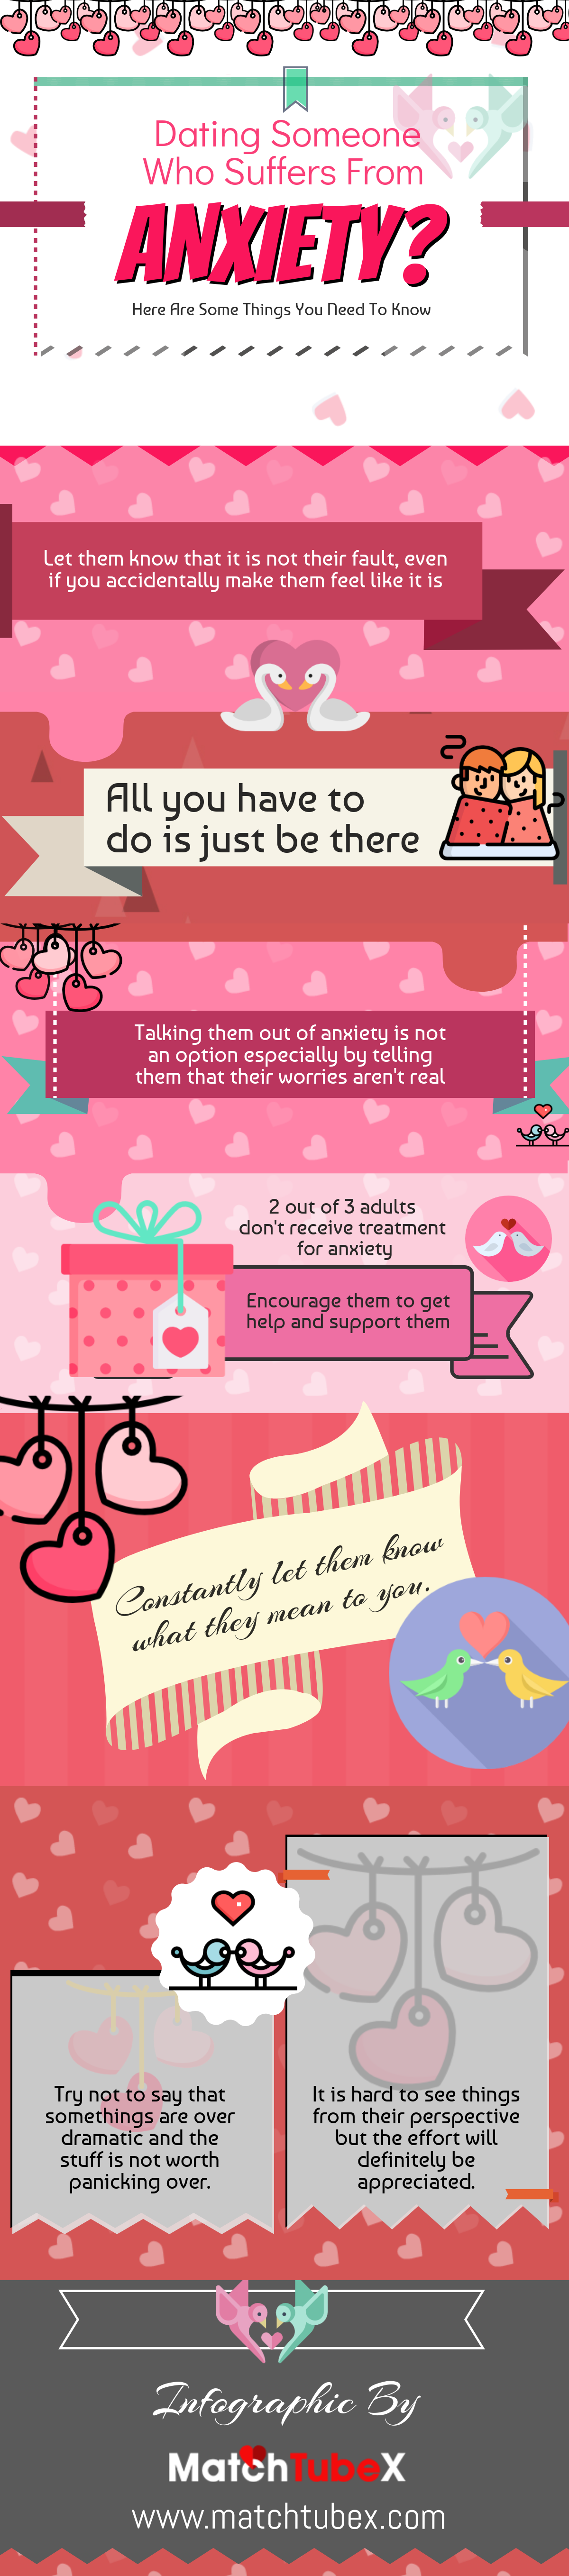 Infographic about dating